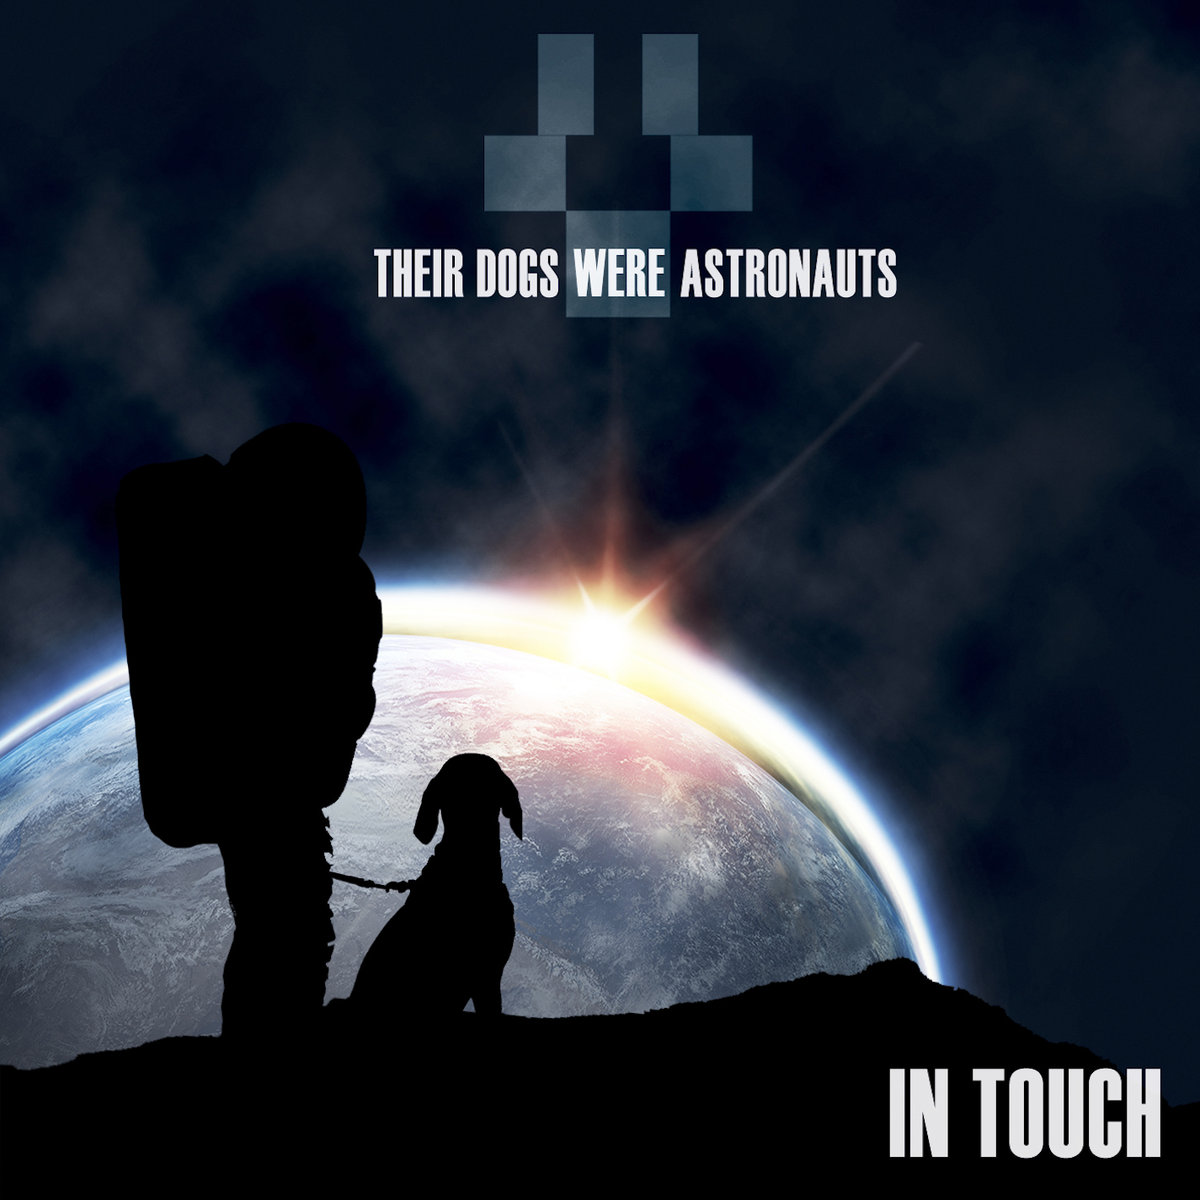 Their Dogs Were Astronauts - Astral Plane @ 'In Touch' album (instrumental metal, metal)